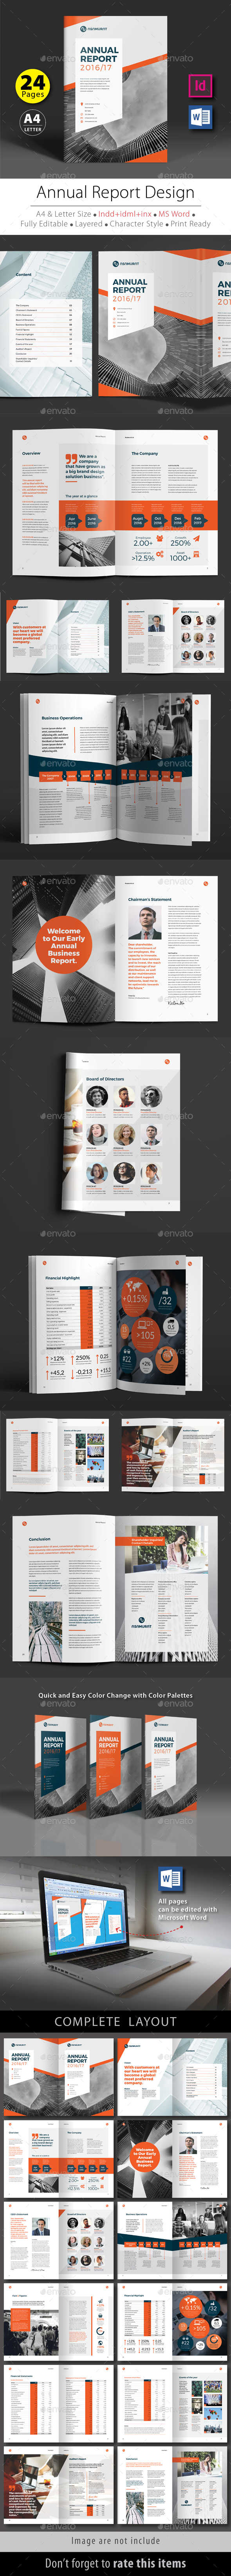 Annual Report Design Template V.5 - Corporate Brochures